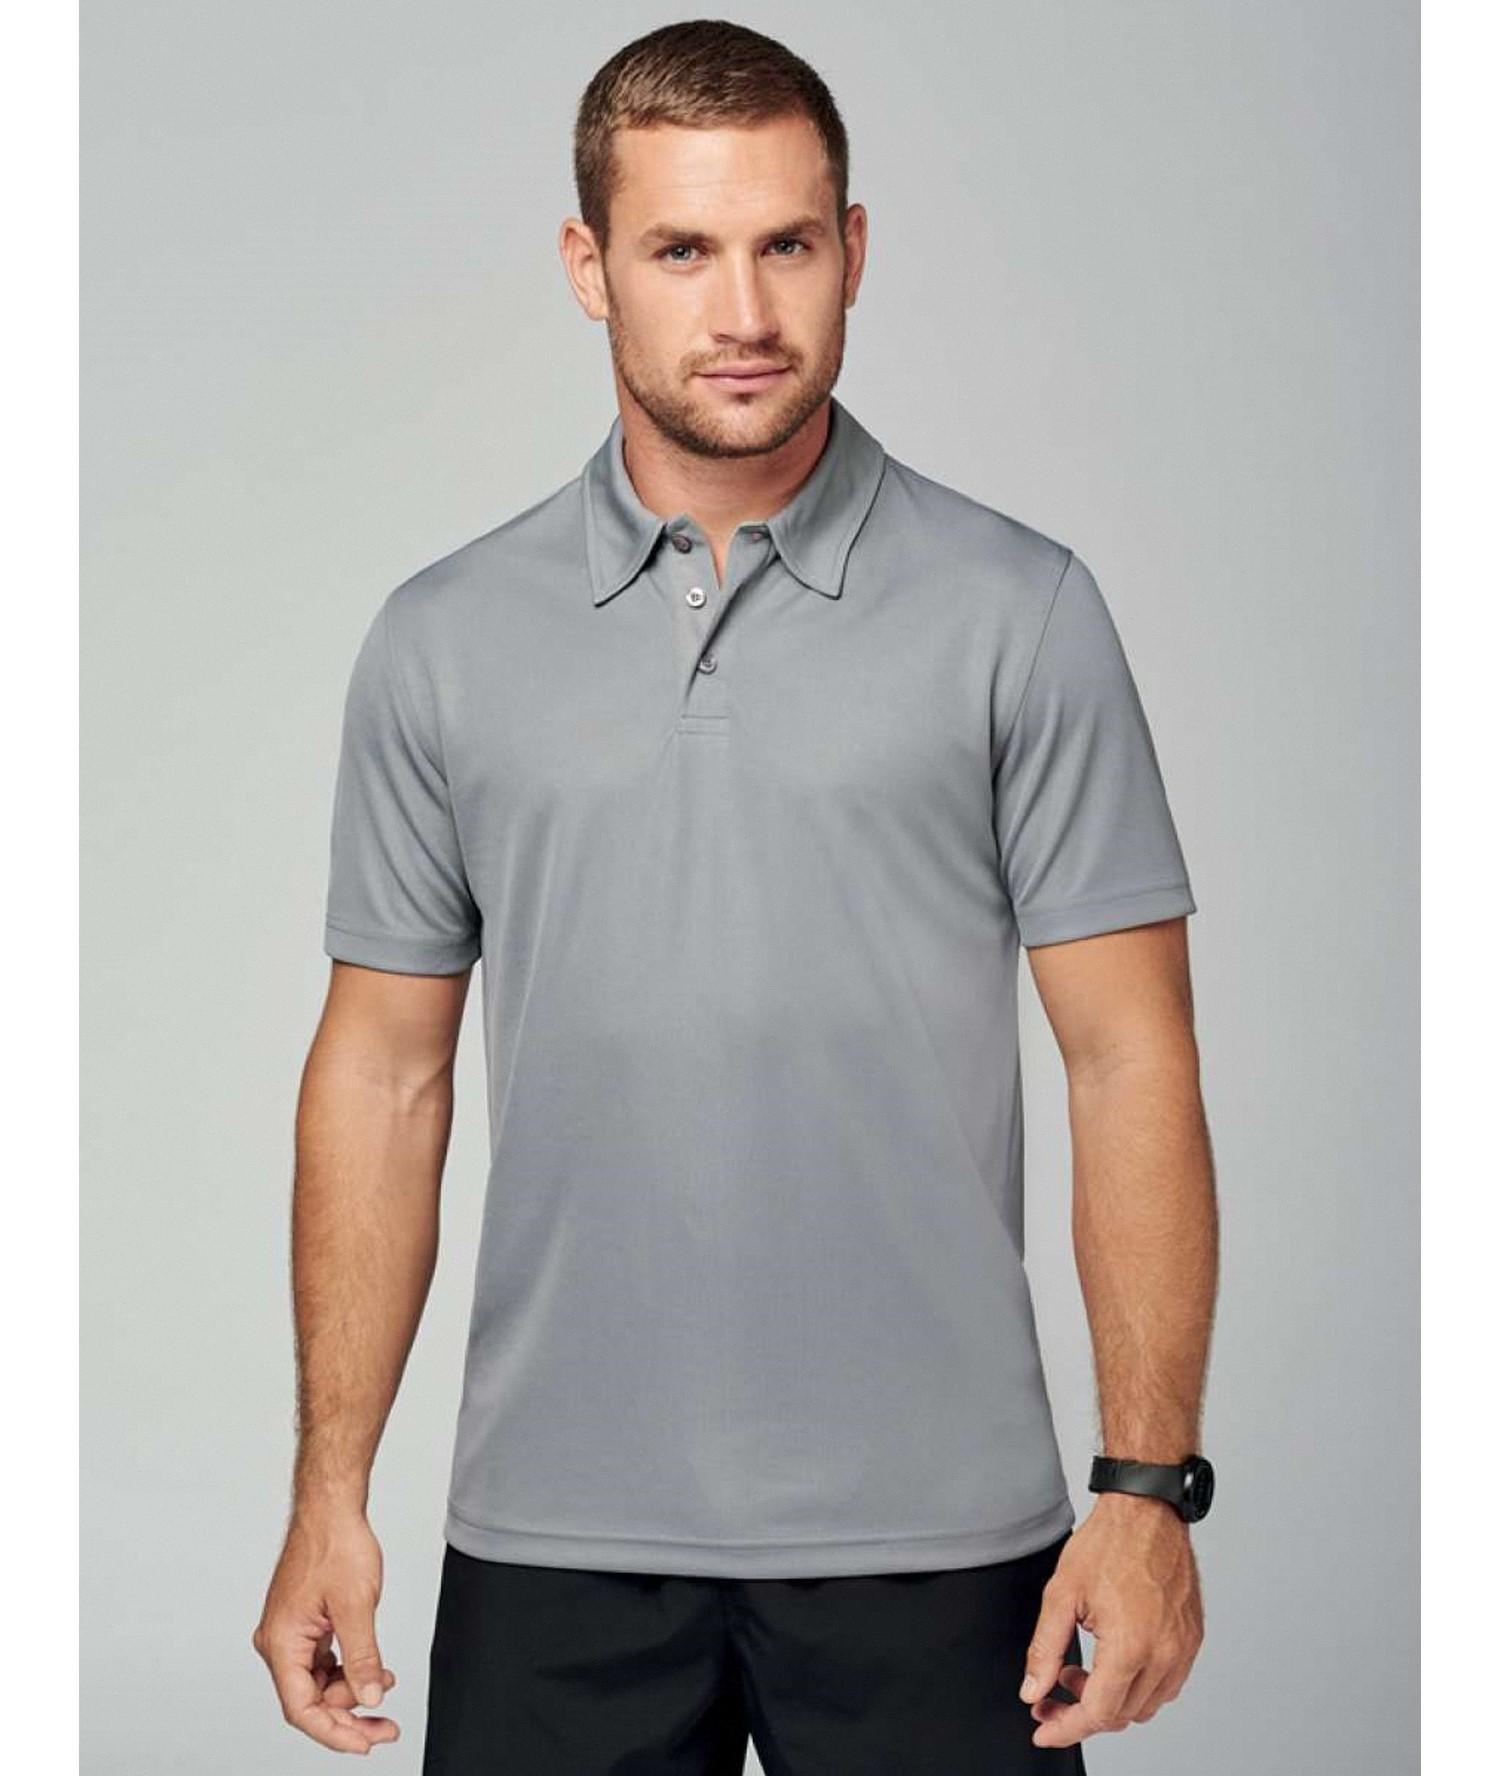 PROACT MEN'S POLO SHIRT